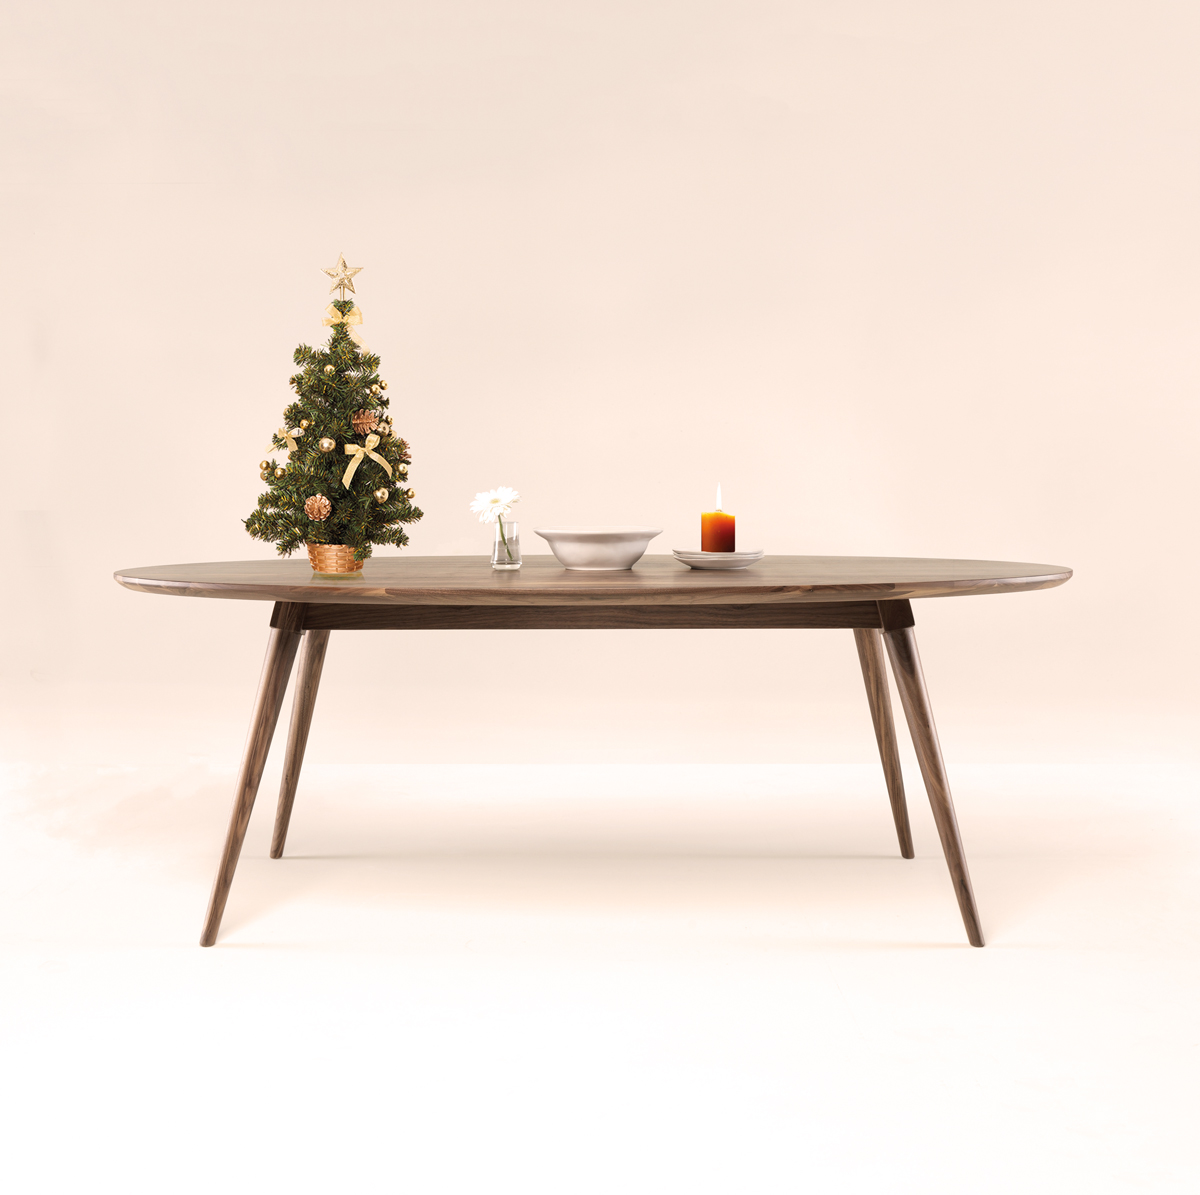 The Christmas dinner is the moment to reunite your family and close friends. There is nothing better than an oval table to enjoy these special moments.